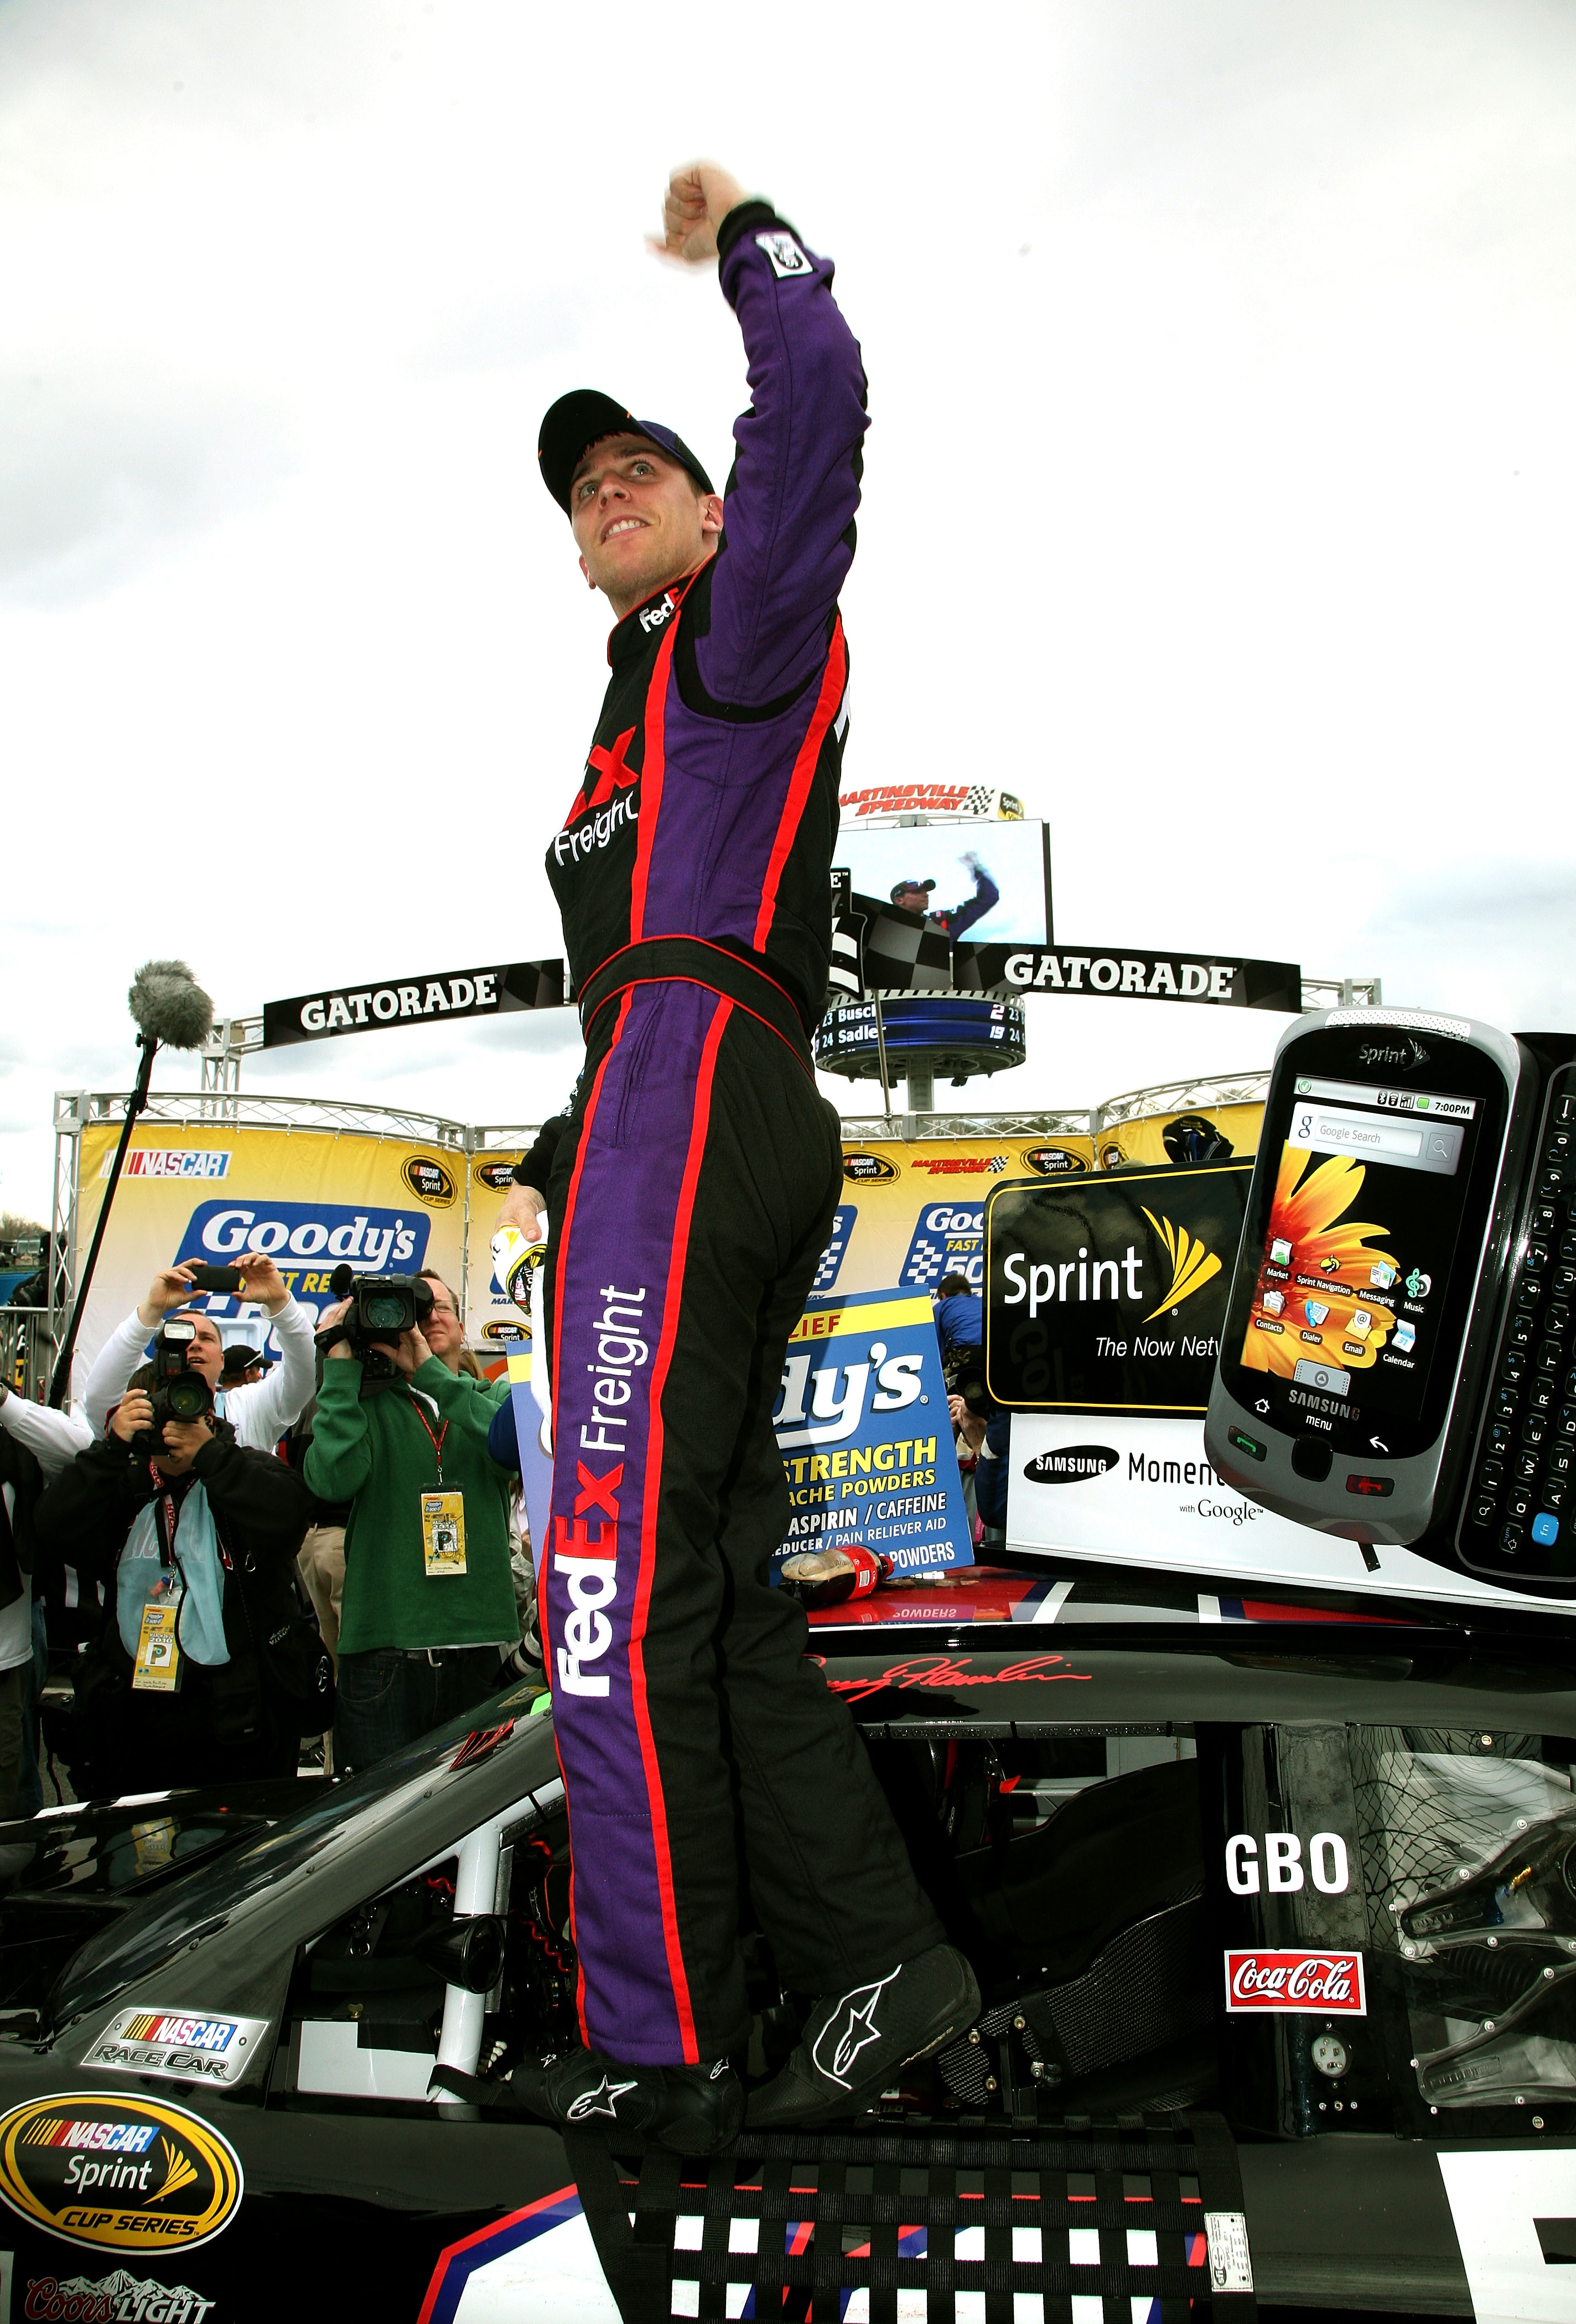 MARTINSVILLE, VA - MARCH 29:  Denny Hamlin celebrates in victory lane after driving the #11 FedEx Toyota to a win in the NASCAR Sprint Cup Series Goody's Fast Pain Relief 500 at Martinsville Speedway on March 29, 2010 in Martinsville, Virginia.  (Photo by